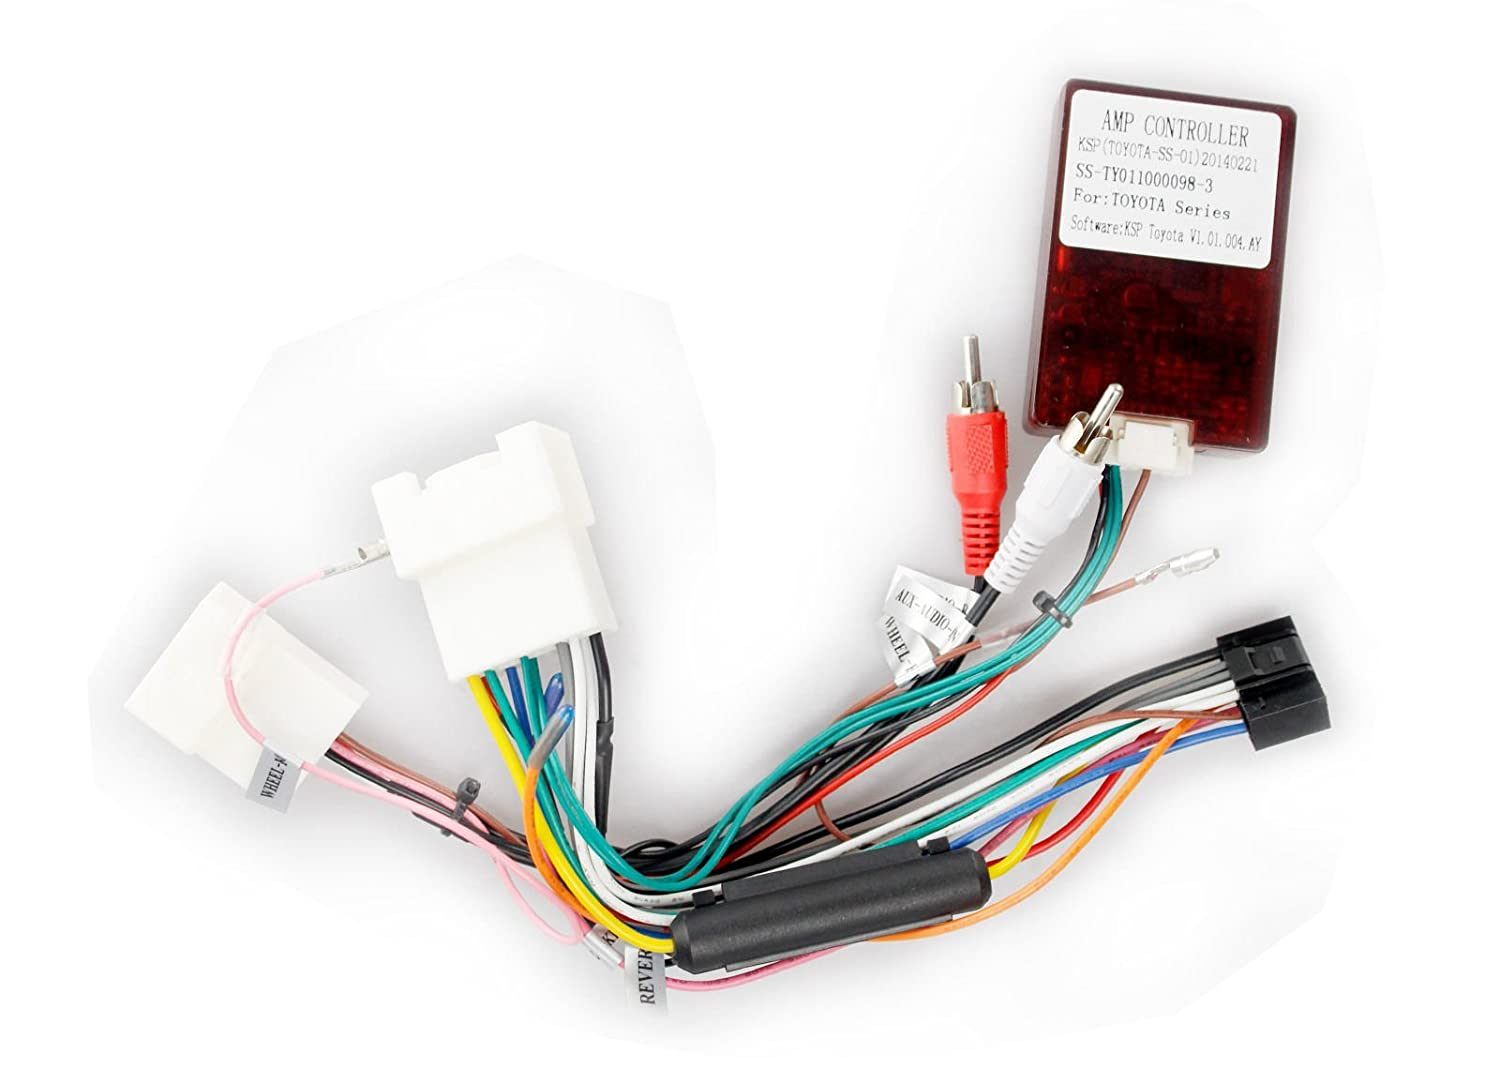 61fZW4TmG1L._SL1500_ amazon com jbl adapter harness for car stereo in toyota camry wiring harness adapter toyota camry at gsmx.co